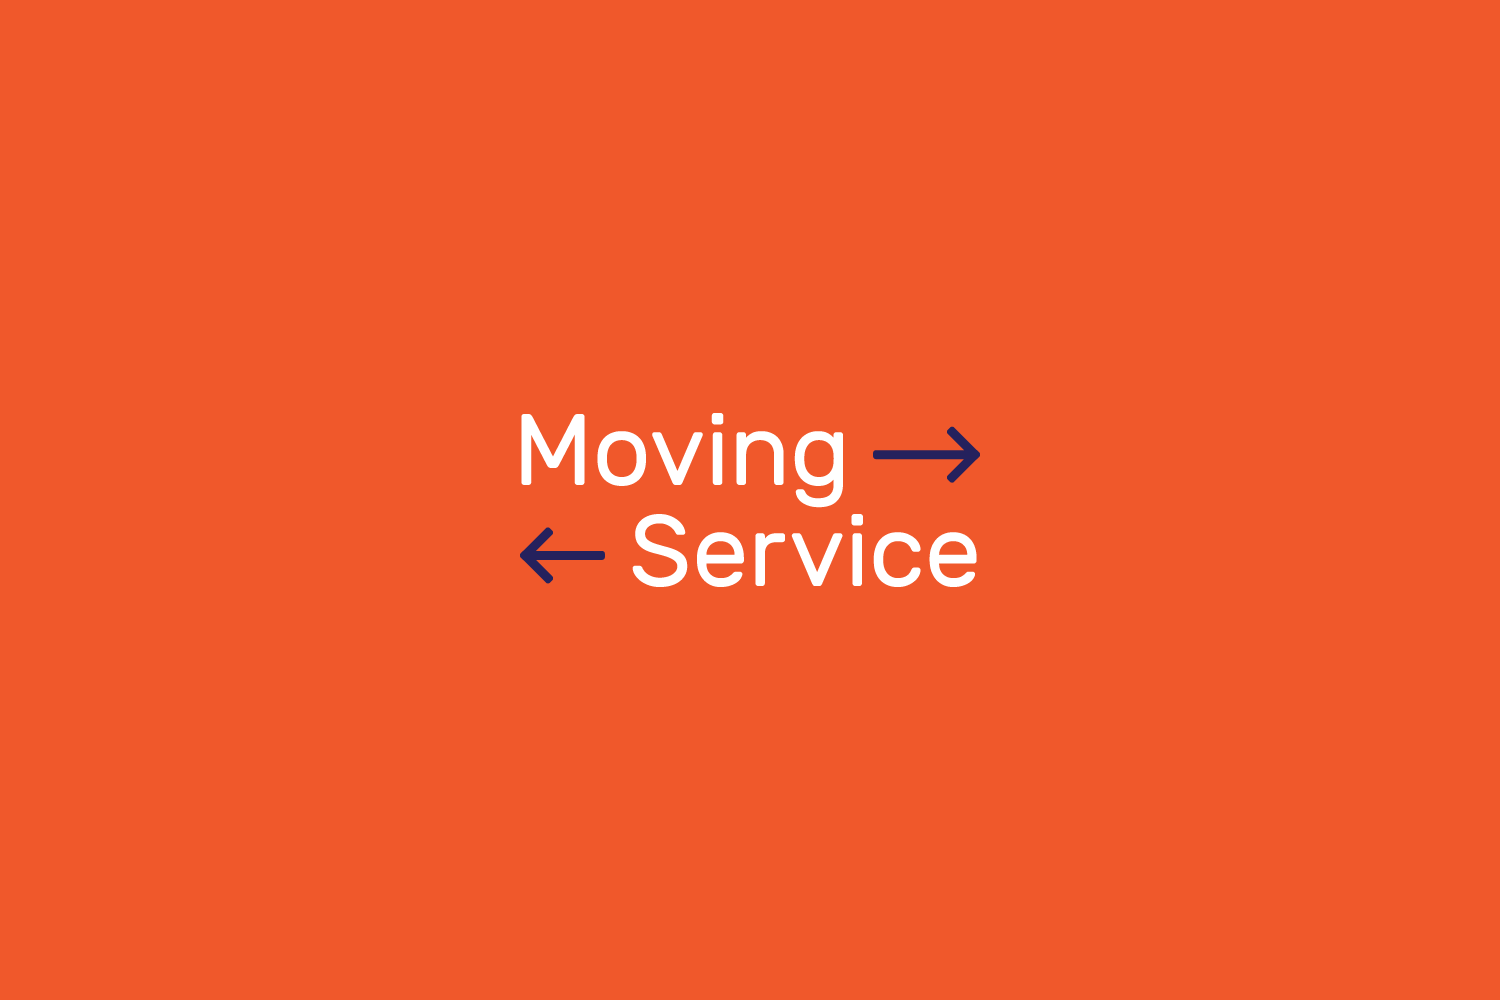 Moving Service LOGO